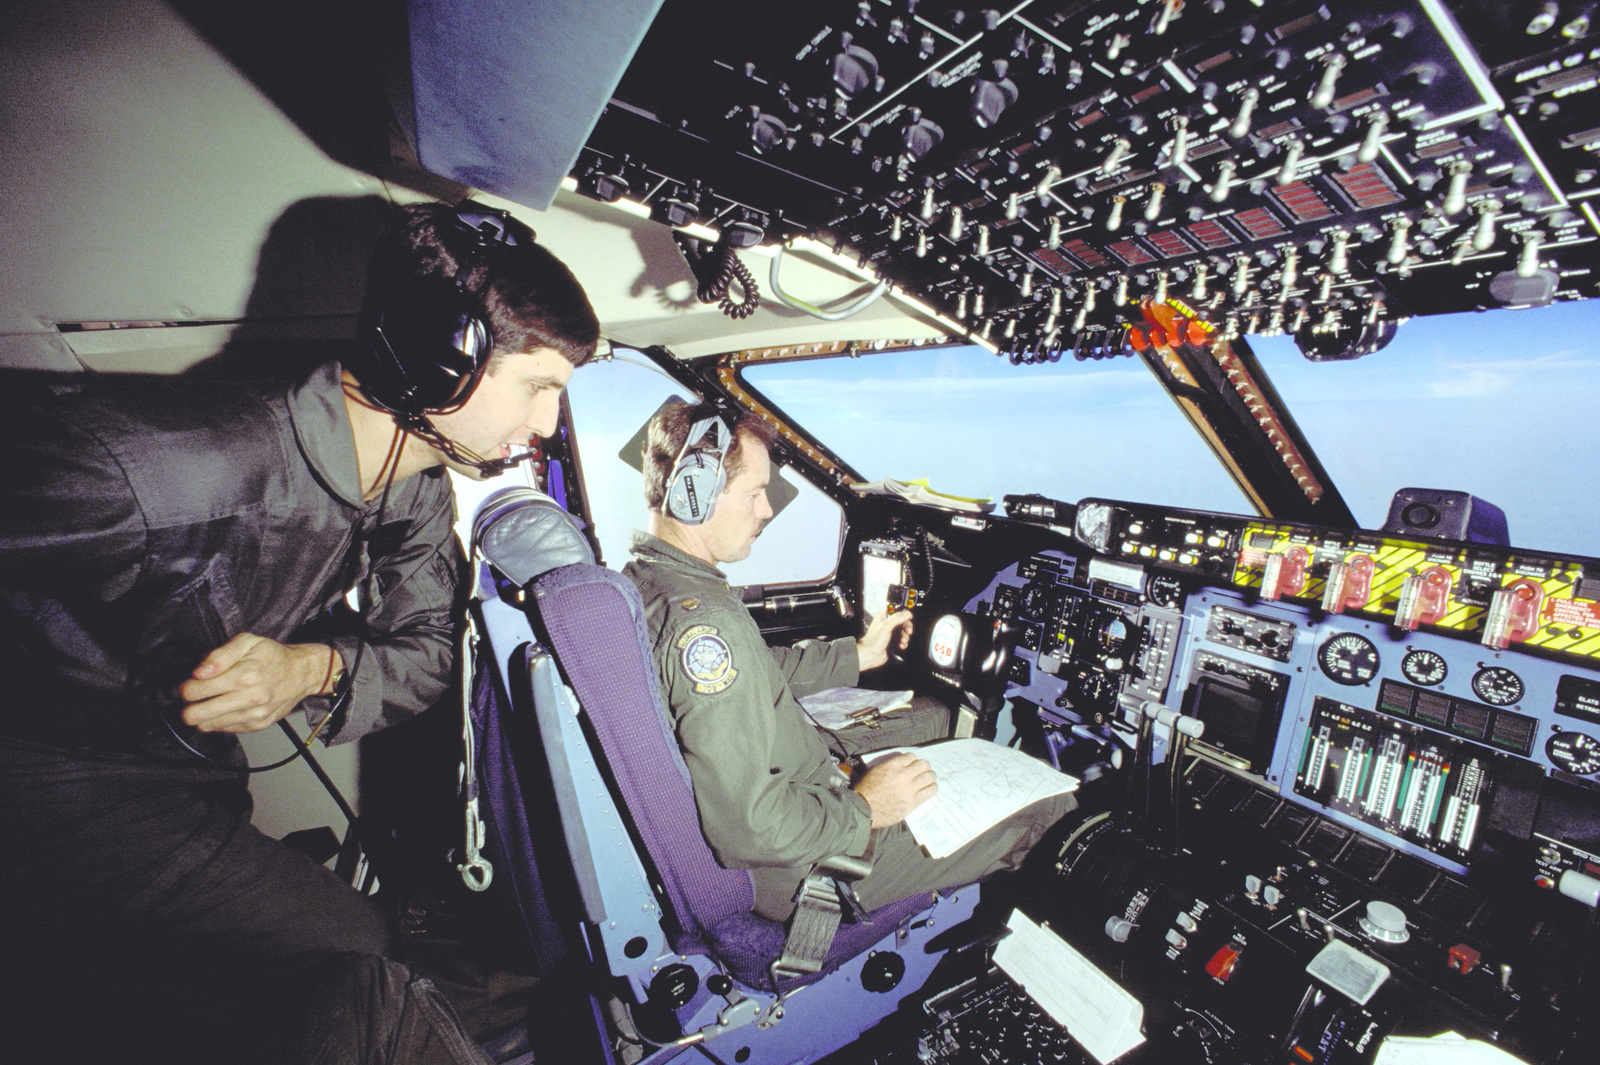 In the cockpit of a 709th Military Airlift Squadron (709th MAS) C-5B Galaxy aircraft, Thomas Van Hare of the Office of the Secretary of Defense, Humanitarian Assistance Office, discusses landing support requirements with MAJ Charles Corbet, the pilot of one of two 709th MAS aircraft that are delivering a Bailey Bridge to Islamabad, Pakistanm. The portable bridge will be passed on to an Afghan guerilla group that will use it to span the Konar River outside of Jalalabad, Afghanistan